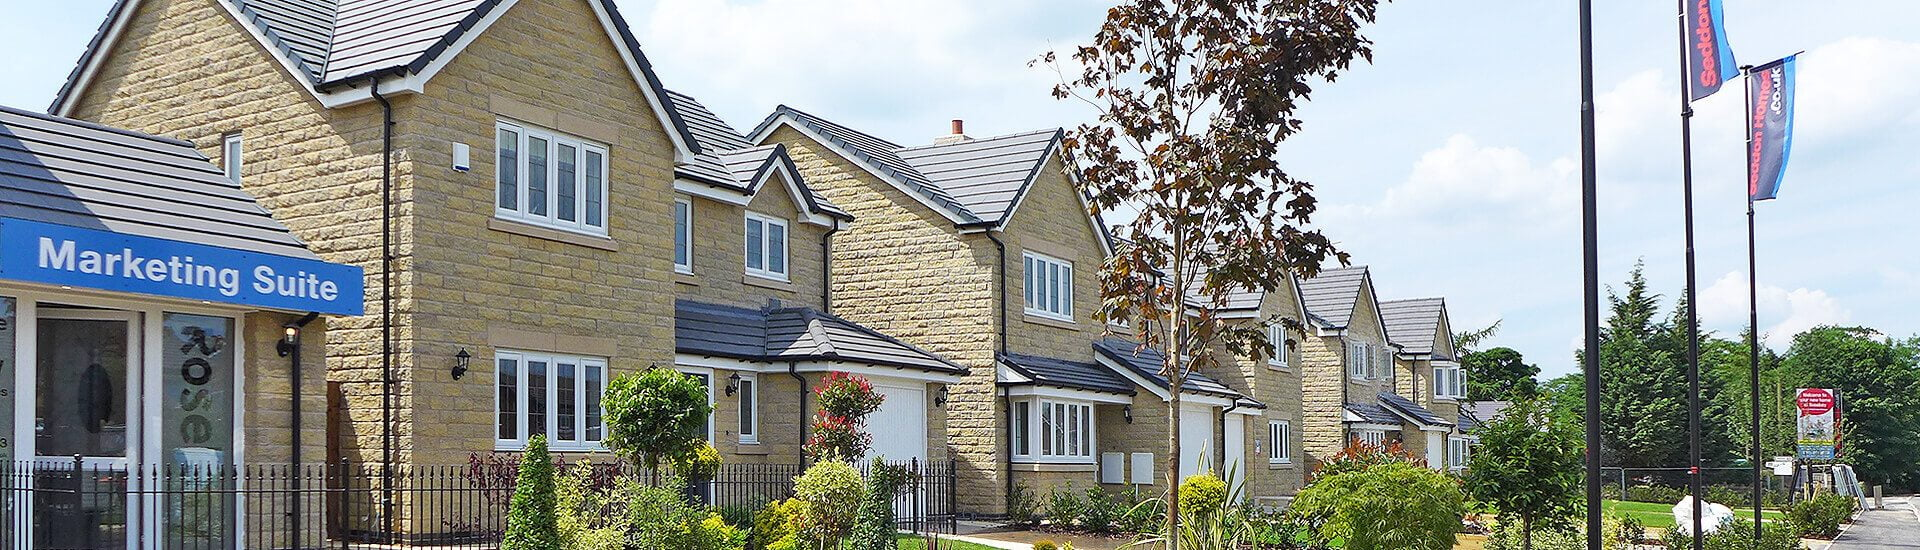 Rosebay Development New Homes for Sale in Derbyshire